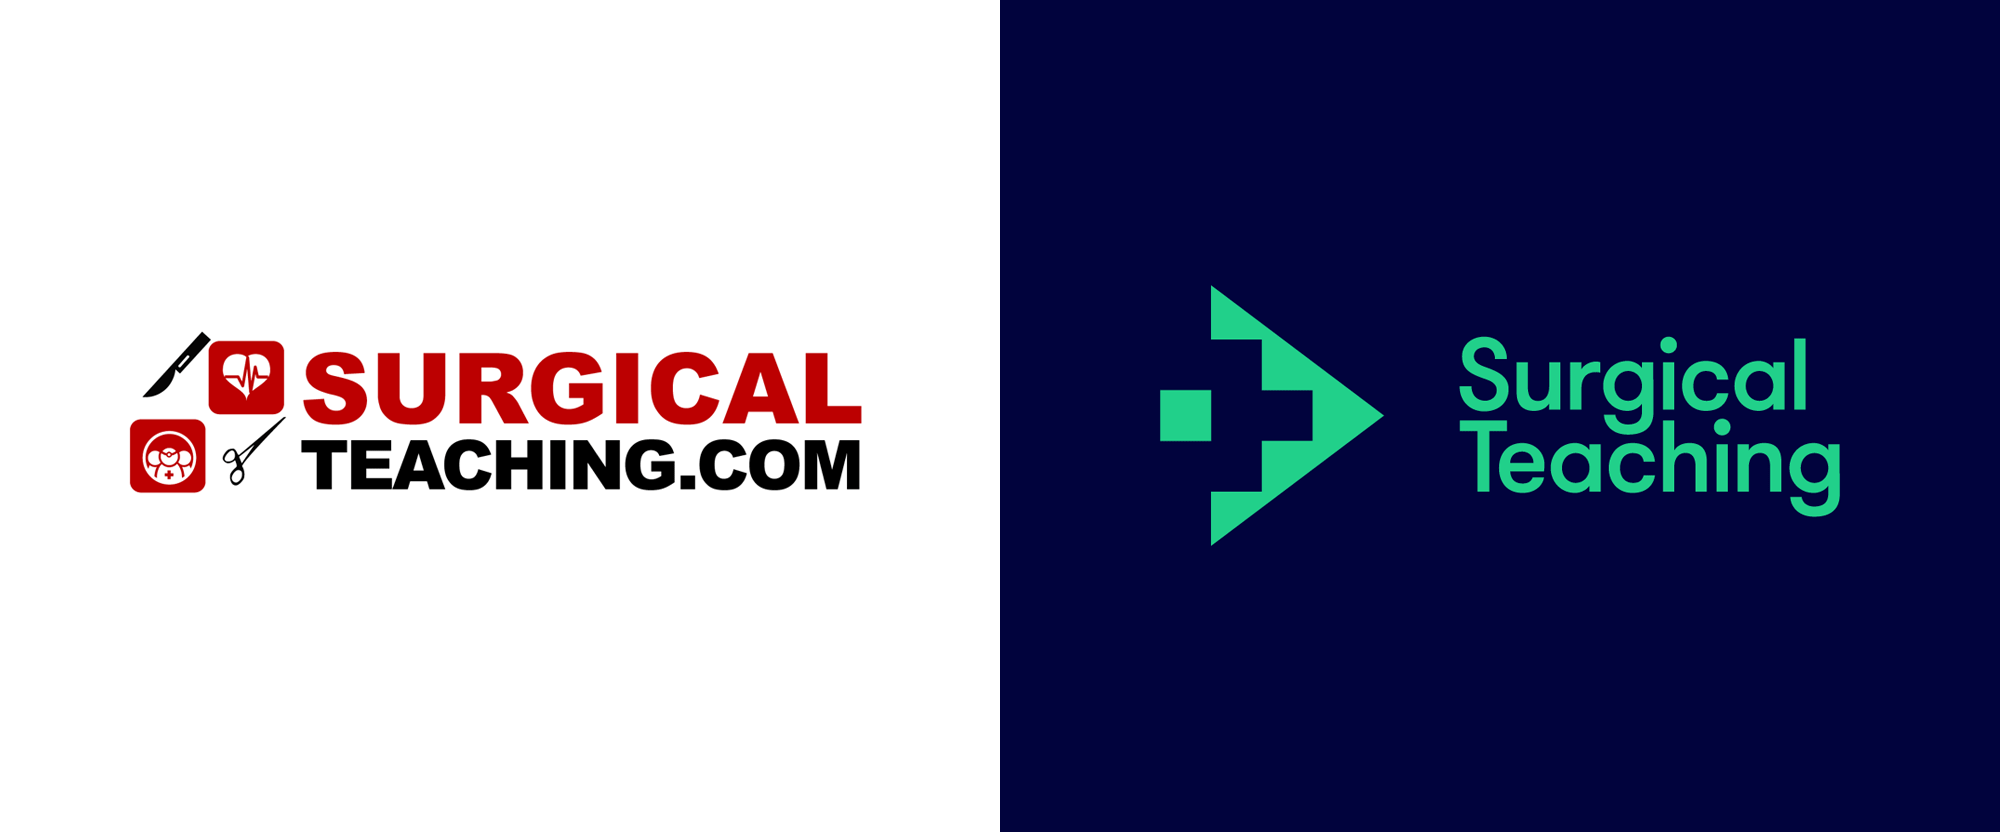 New Logo and Identity for Surgical Teaching by Ahoy